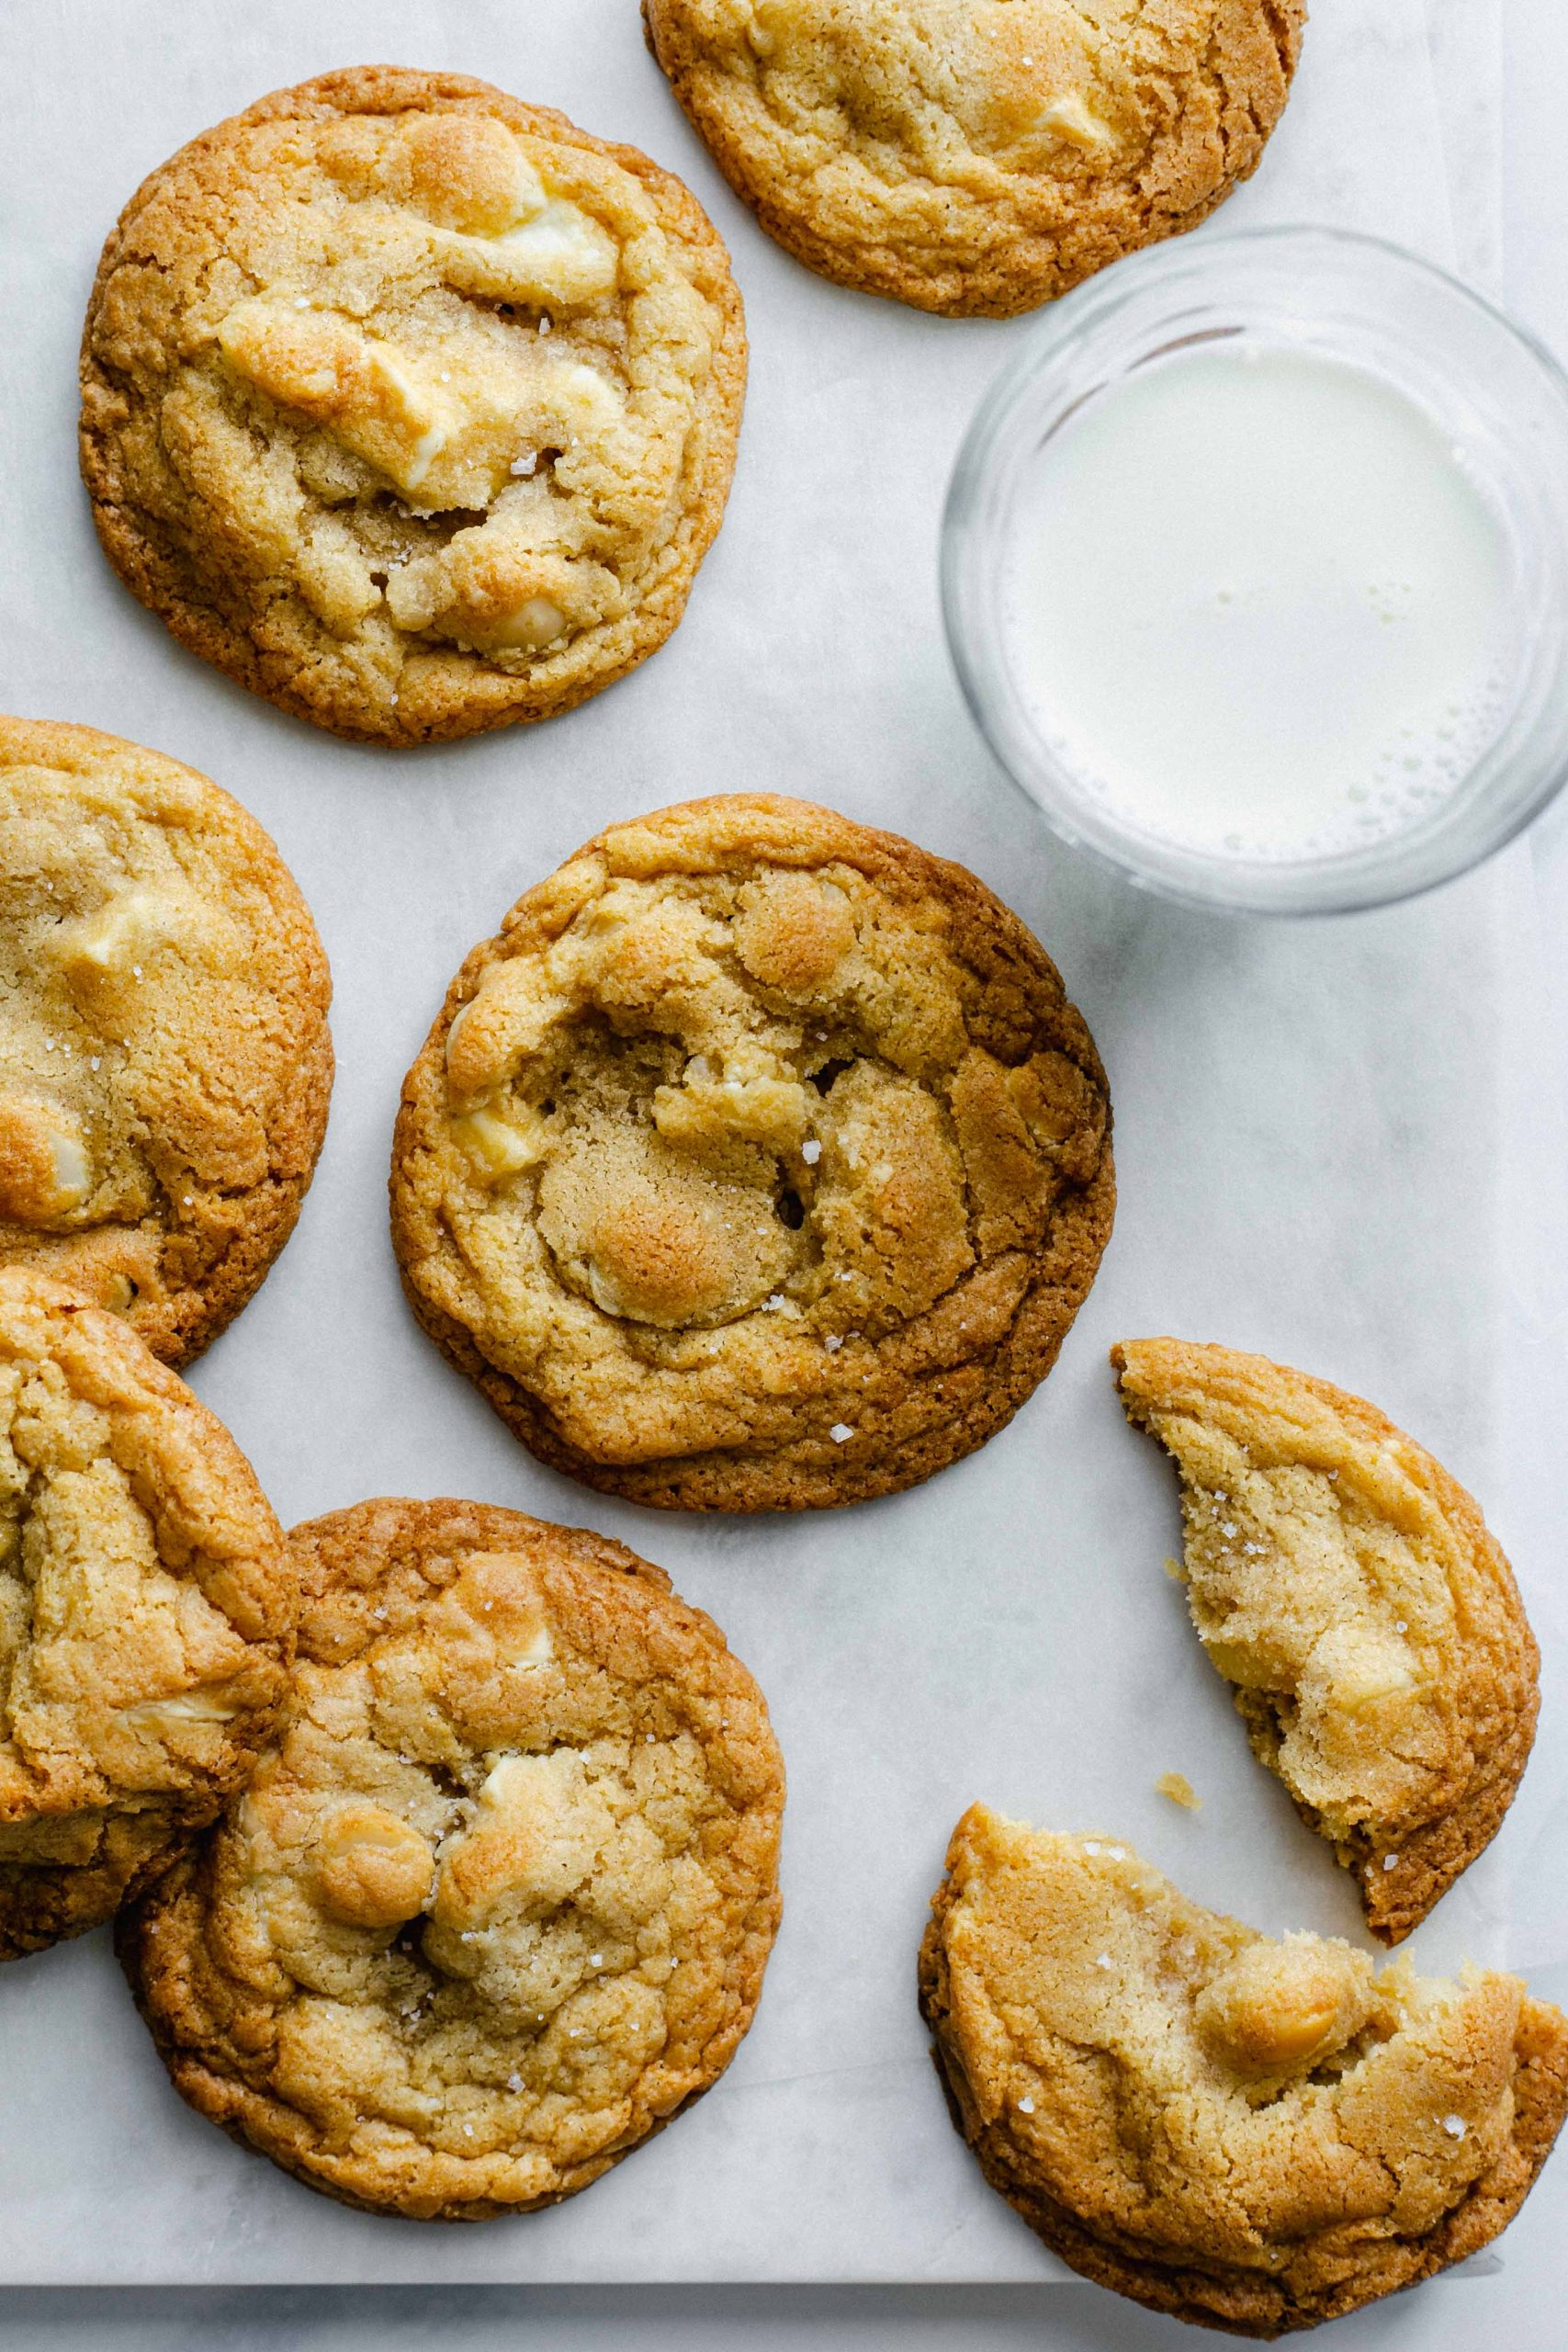 Low FODMAP white choc chip and macadamia nut cookies